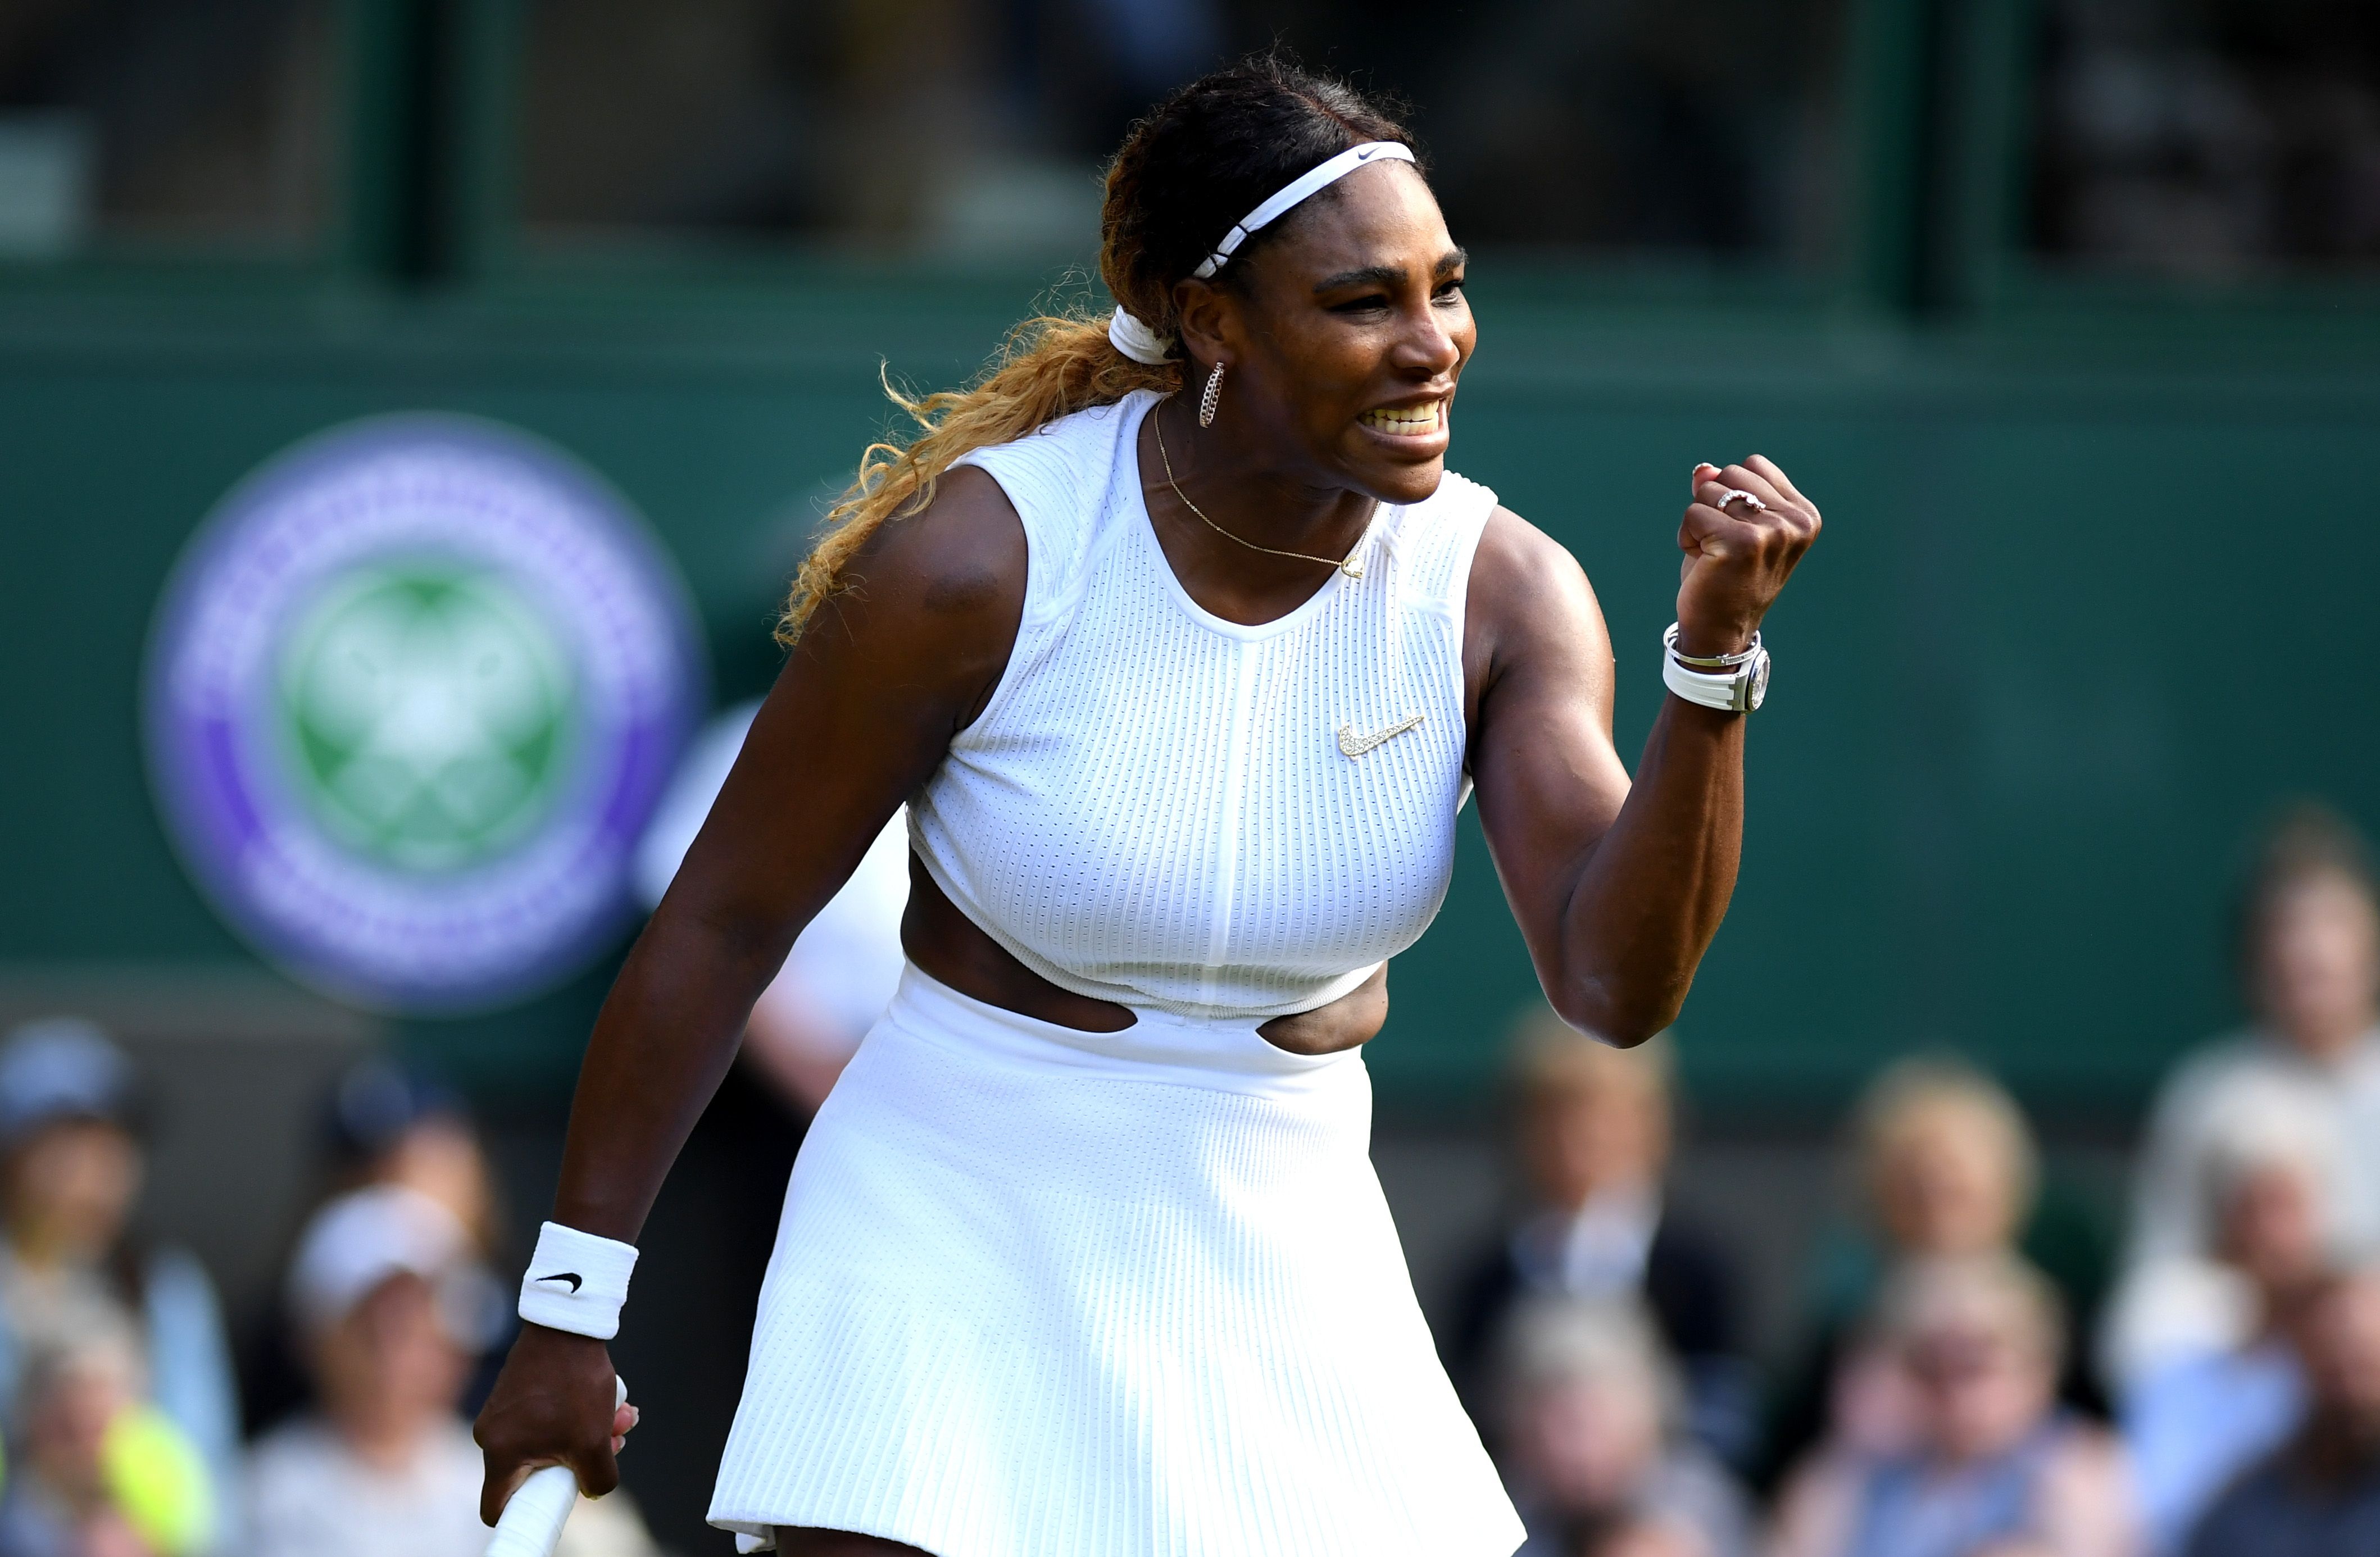 The Significance Of Serena Williams Tennis Outfit At Wimbledon